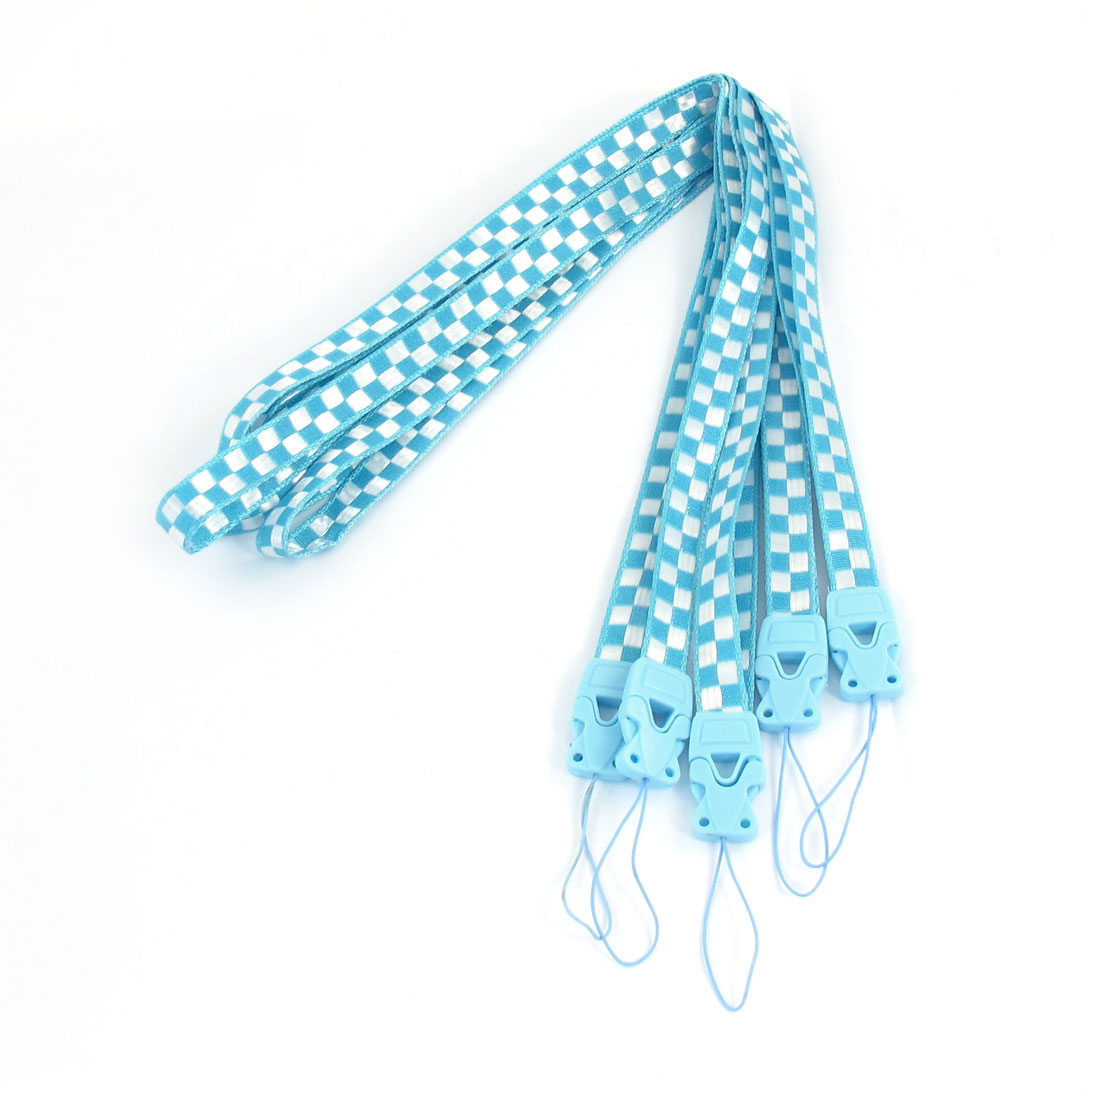 Light Blue White Check Print Cards Keys Mp3 Neck Strap Lanyard String 5 Pcs